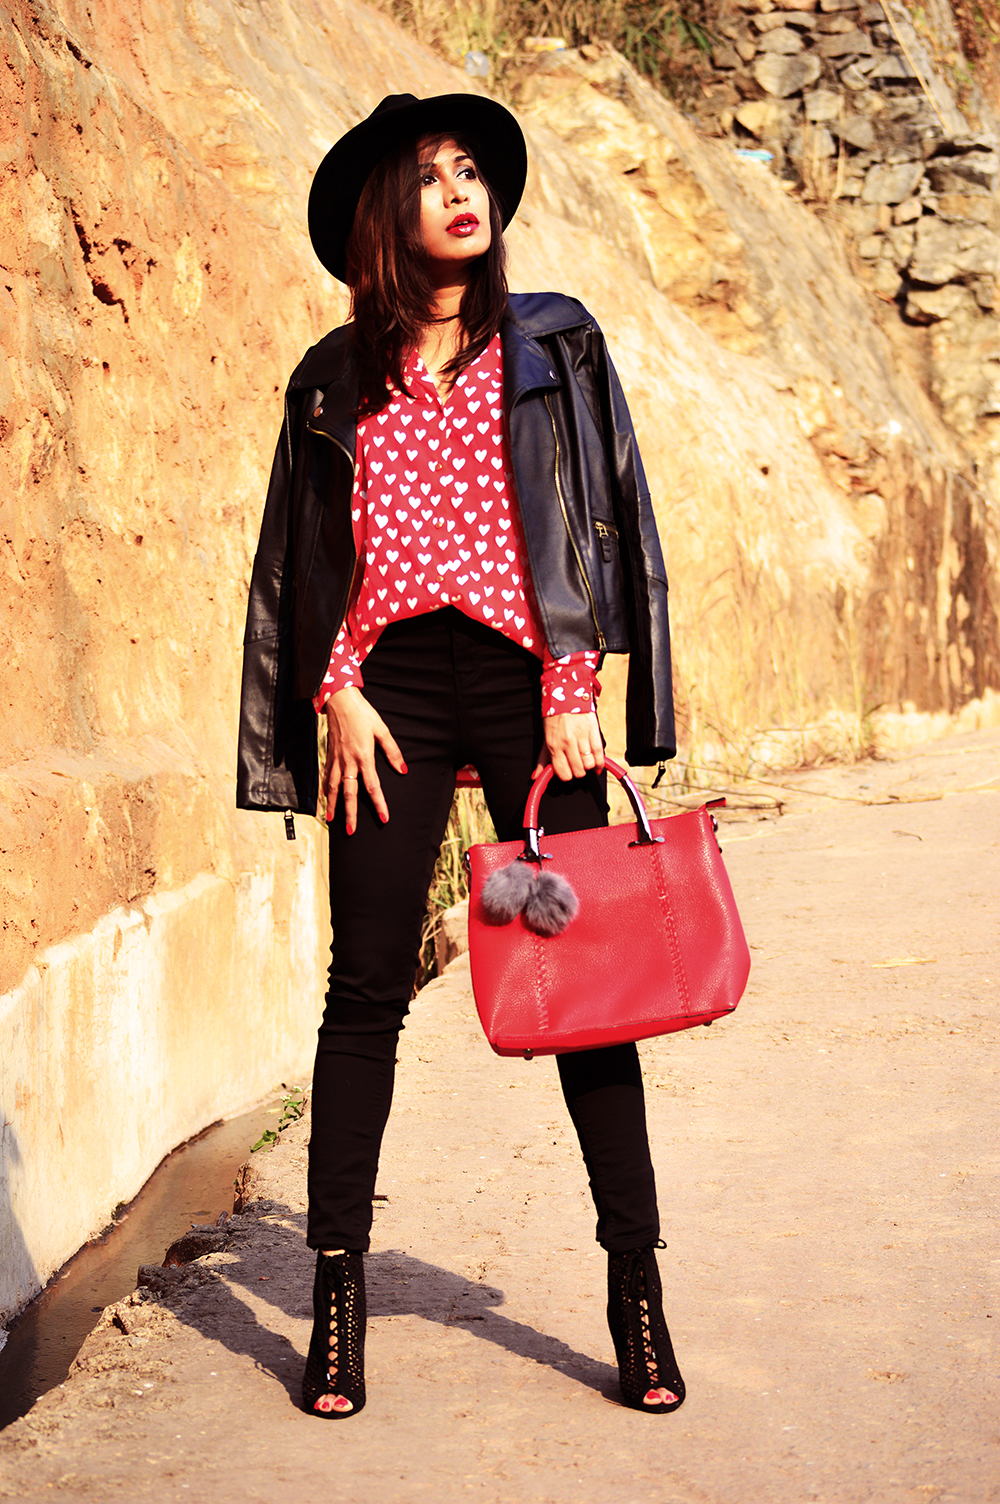 Fashion, Style, Heart Print, Indian Fashion Blogger, Street Style, Beauty, Biker Jacket, Fashion Photography-1